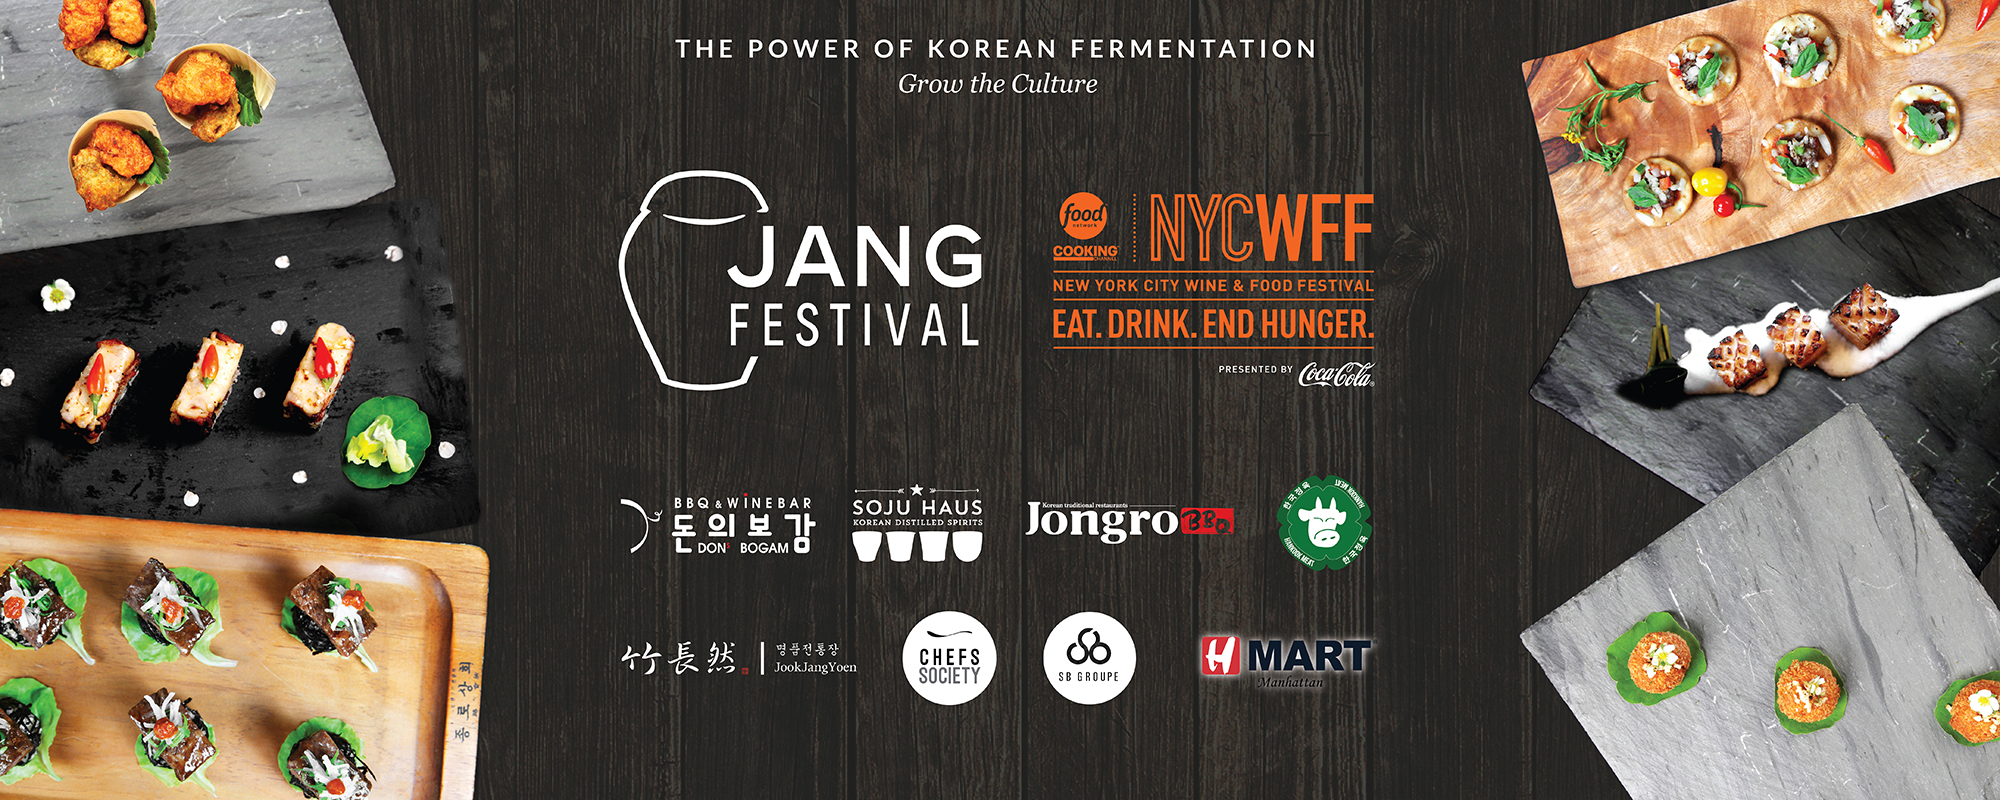 jang-festival-back-drop-web